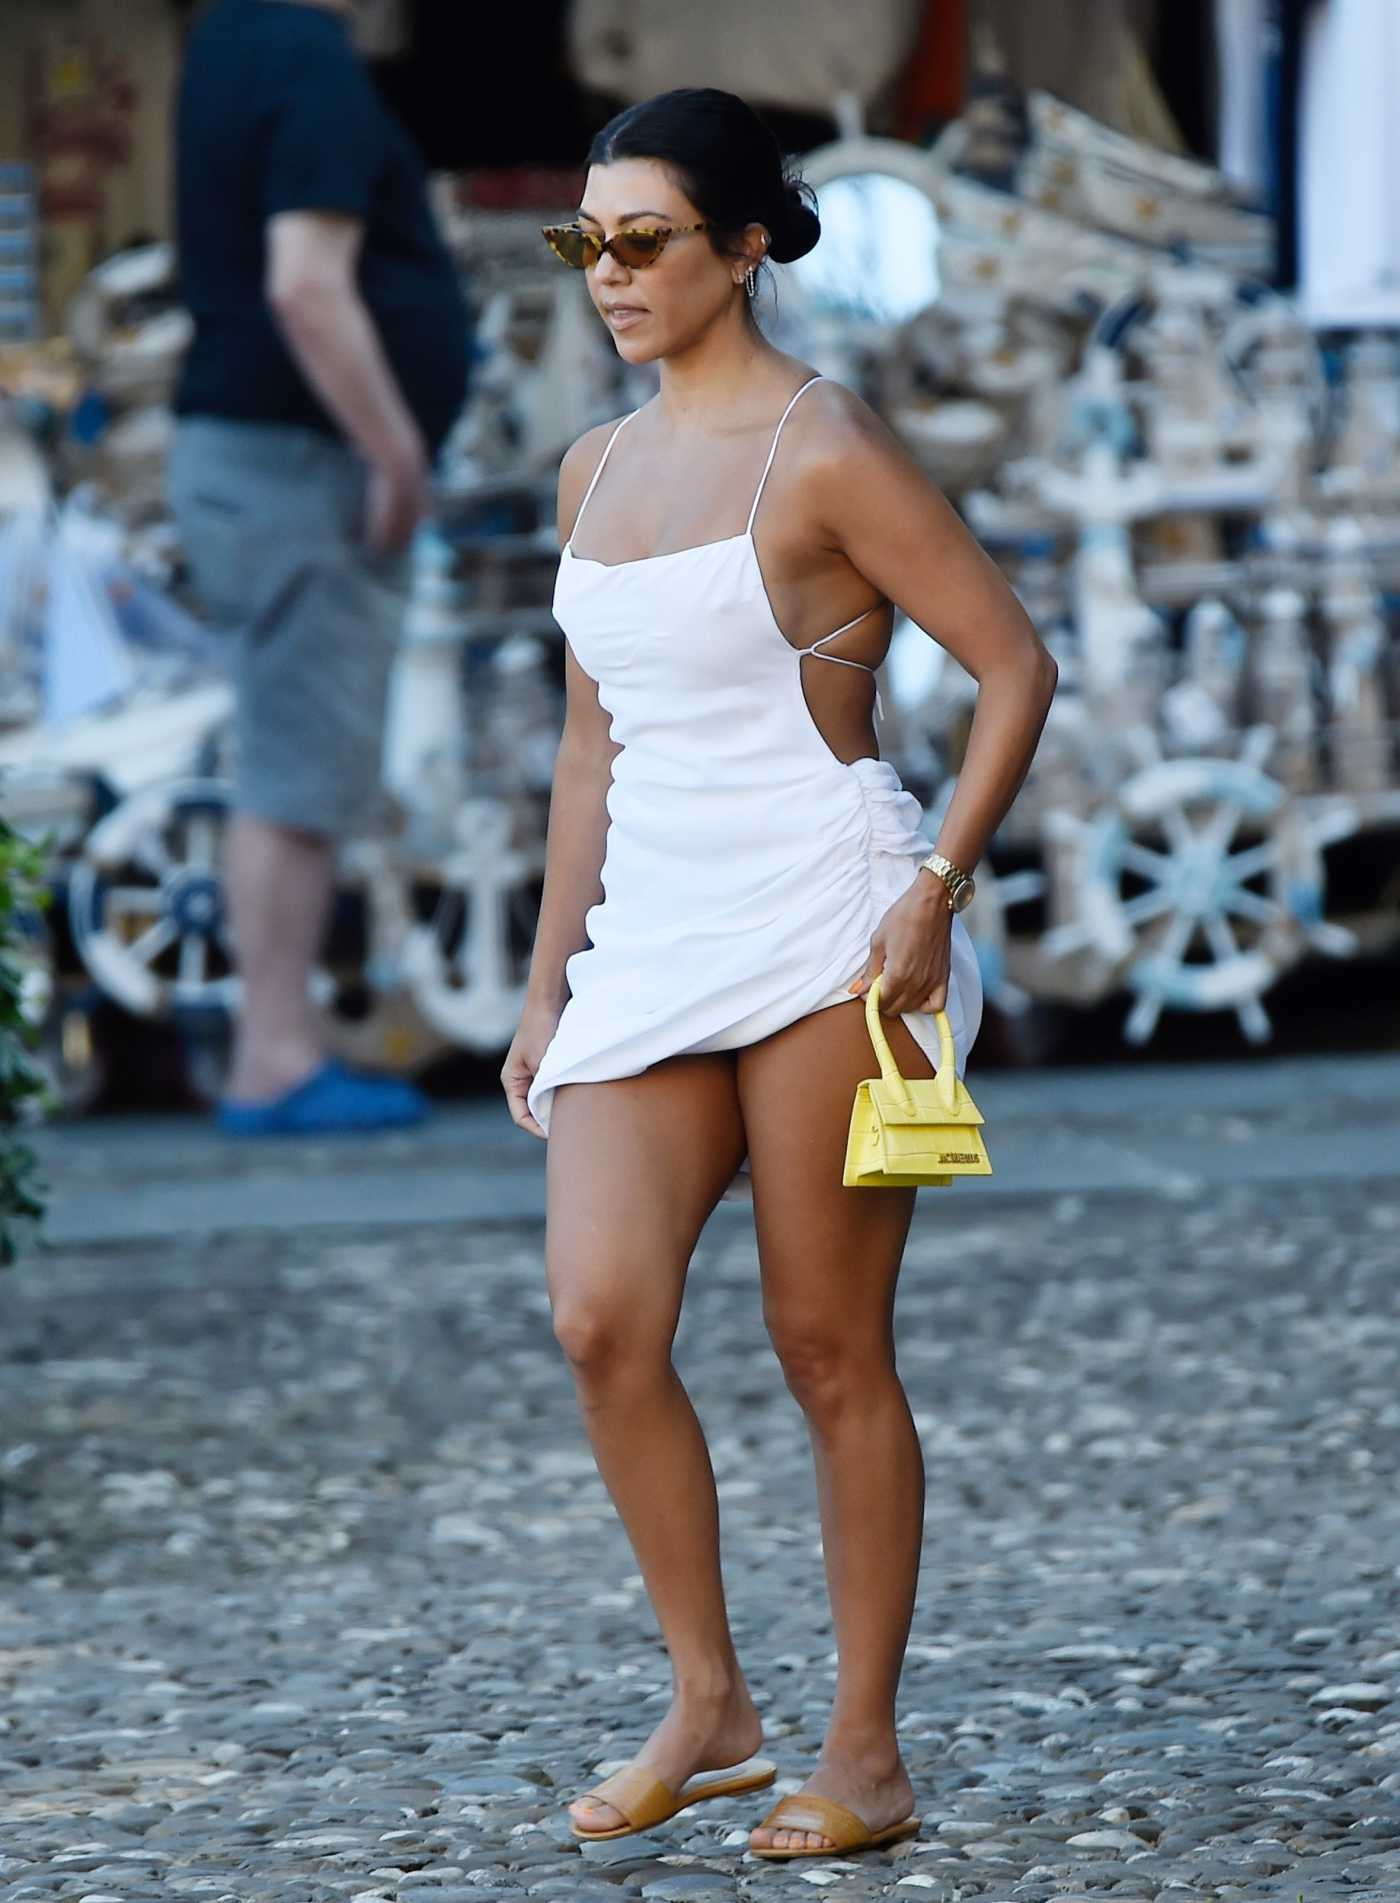 Kourtney Kardashian in a White Dress Was Seen Out in Portofino 08/03/2019